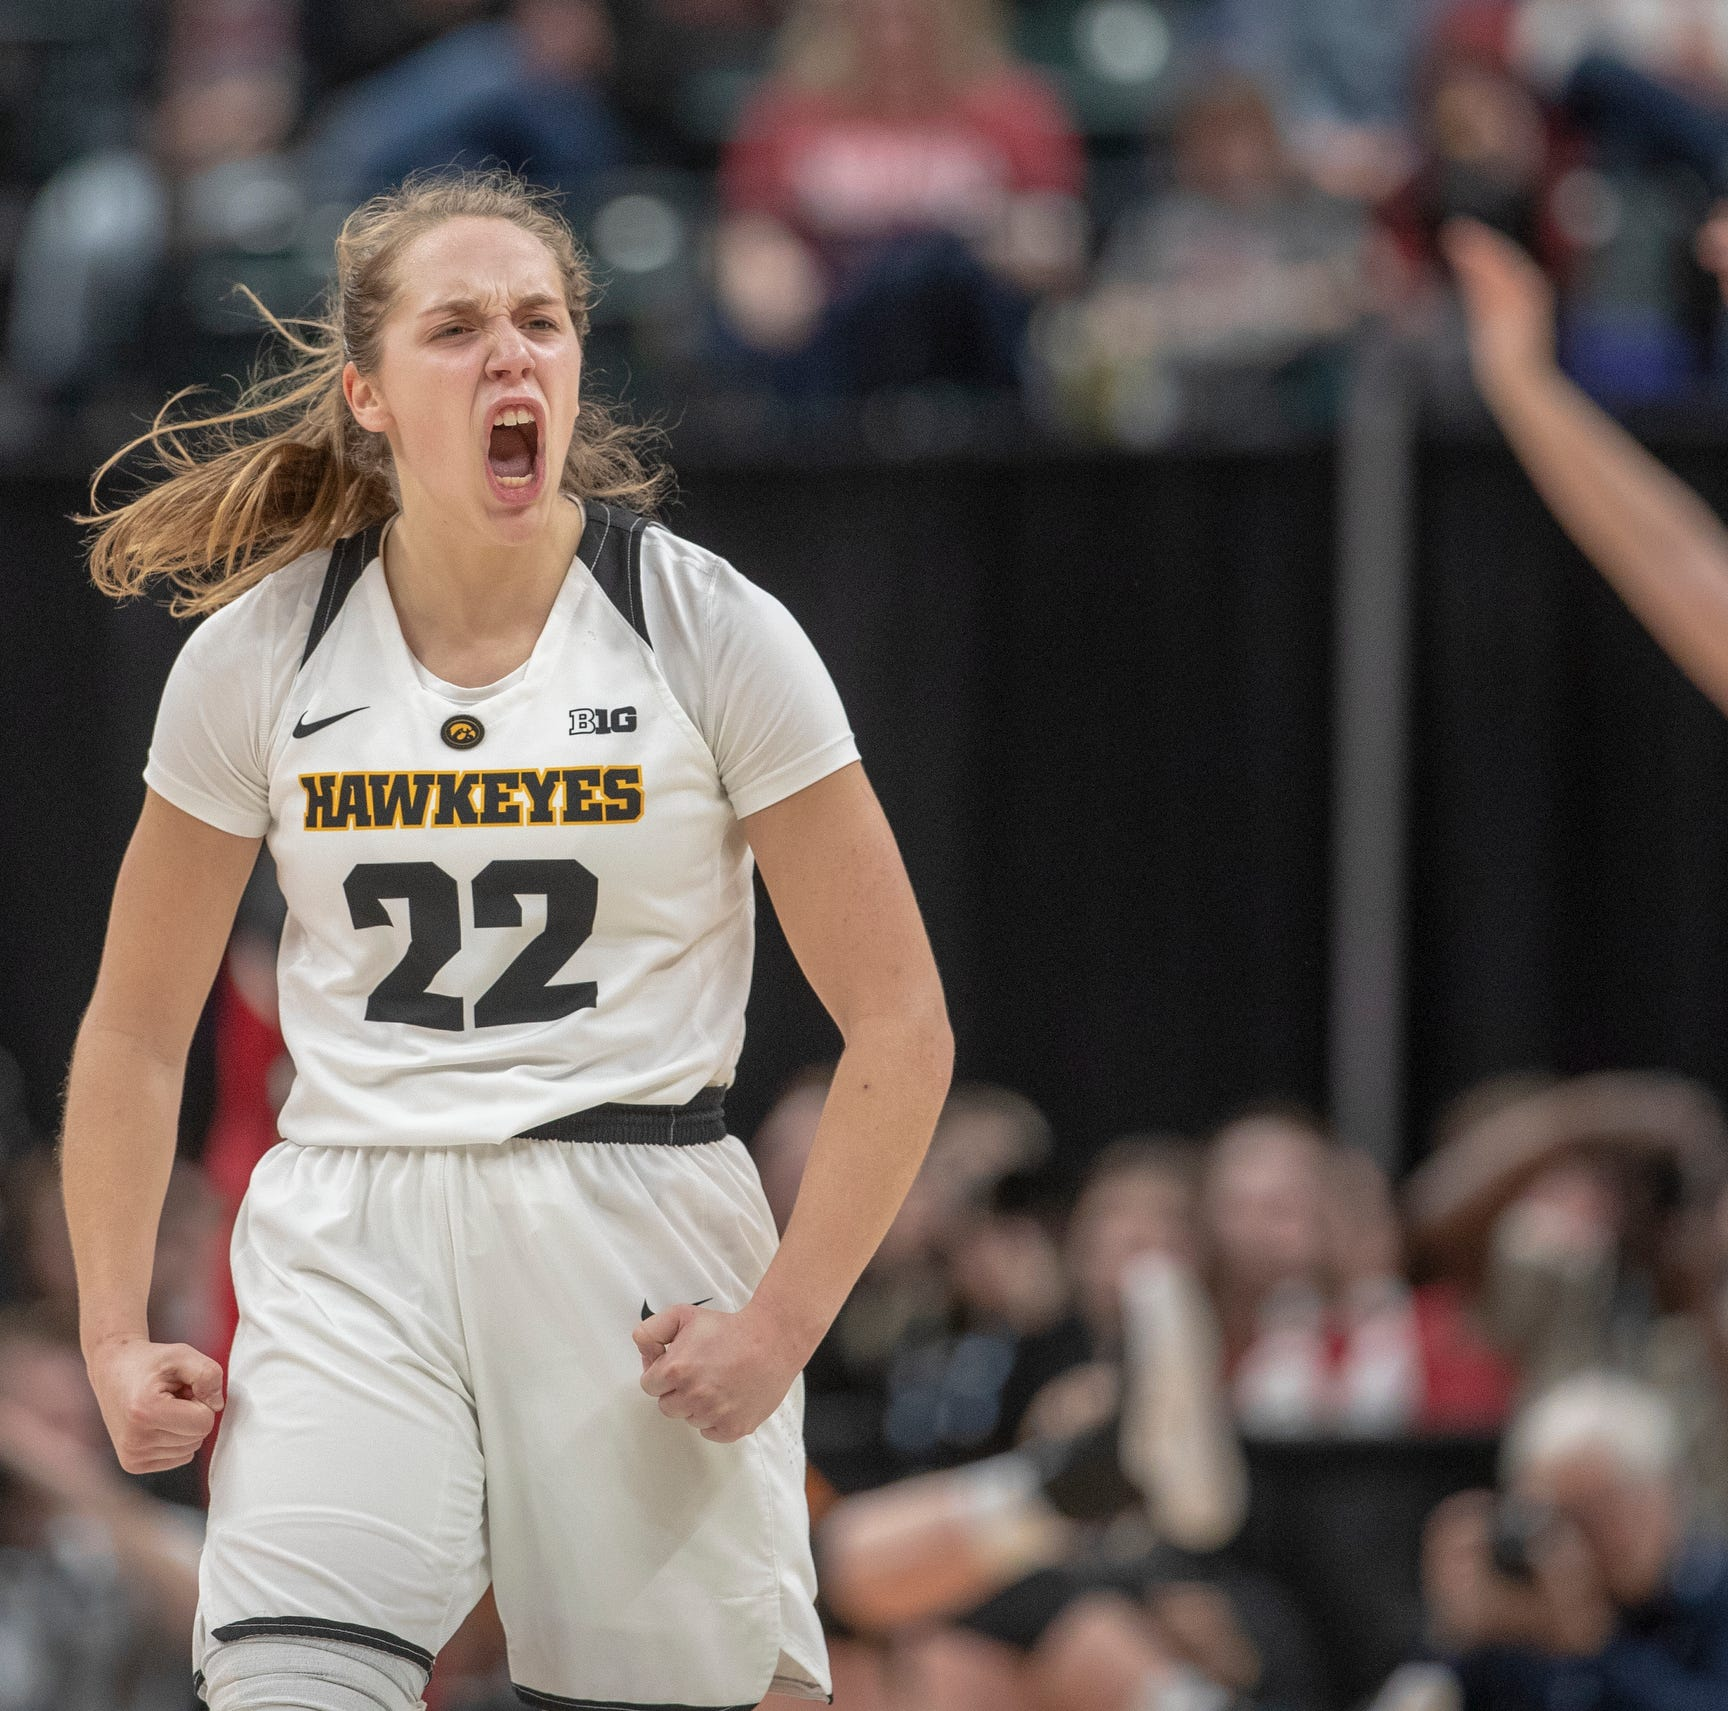 Leistikow: A true team win for Hawkeye women, who are closing in on history